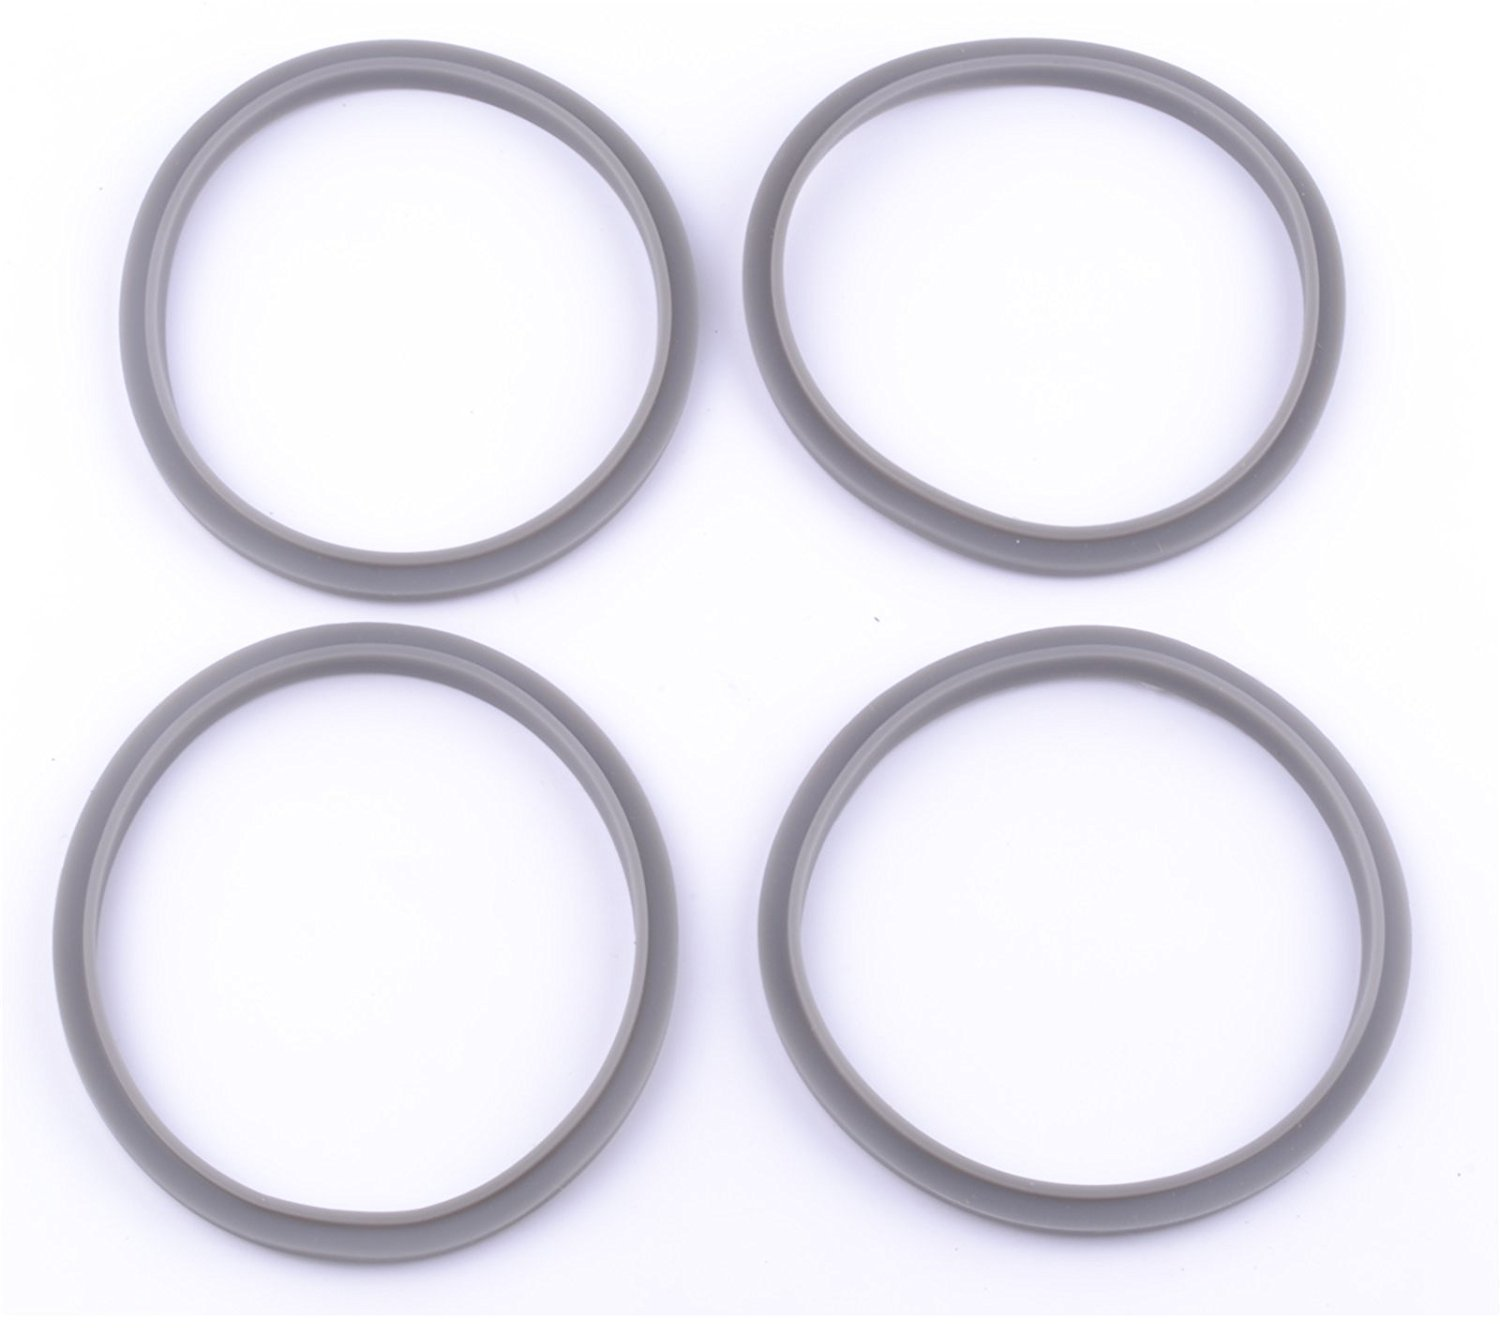 4x Replacement Rubber Seal Ring Nutri Bullet Gaskets Extractor Milling Pro 900W PetintheGarden COMIN16JU041855